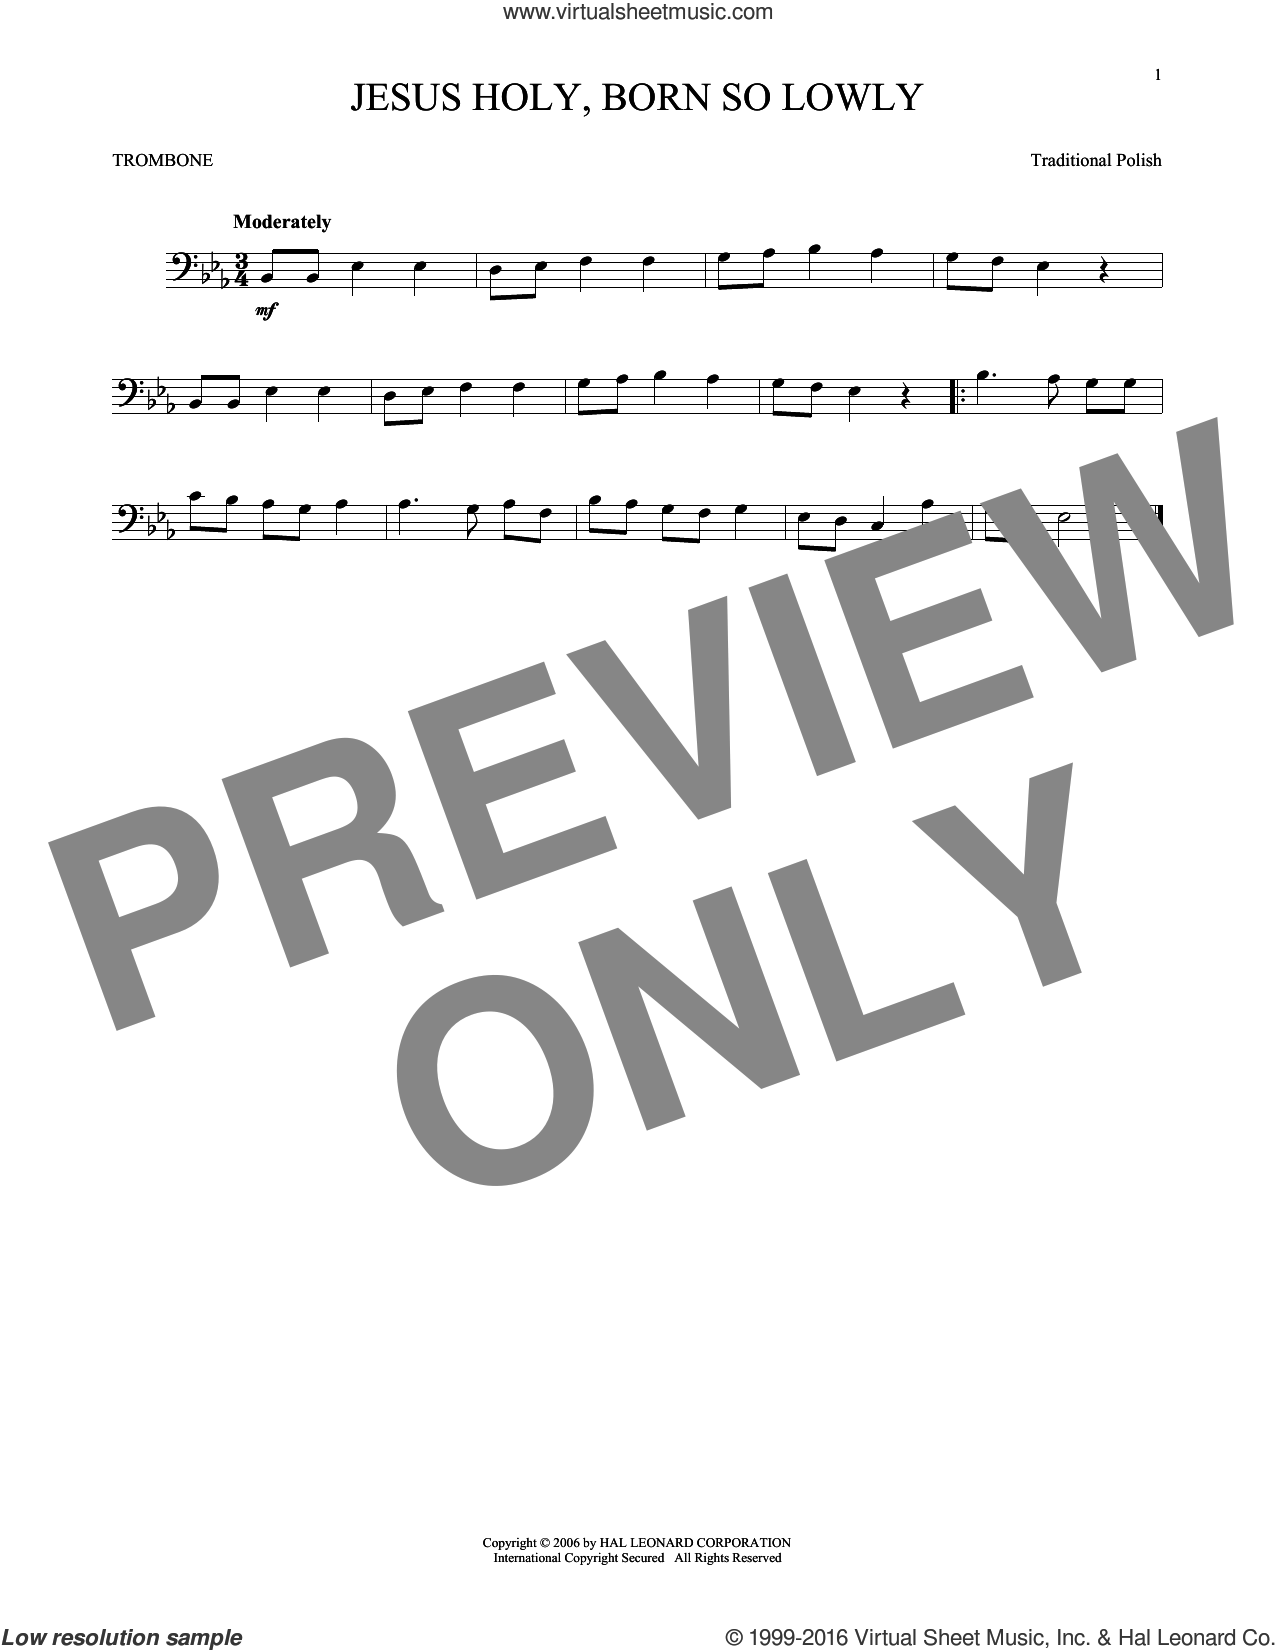 Jesus Holy, Born So Lowly sheet music for trombone solo. Score Image Preview.